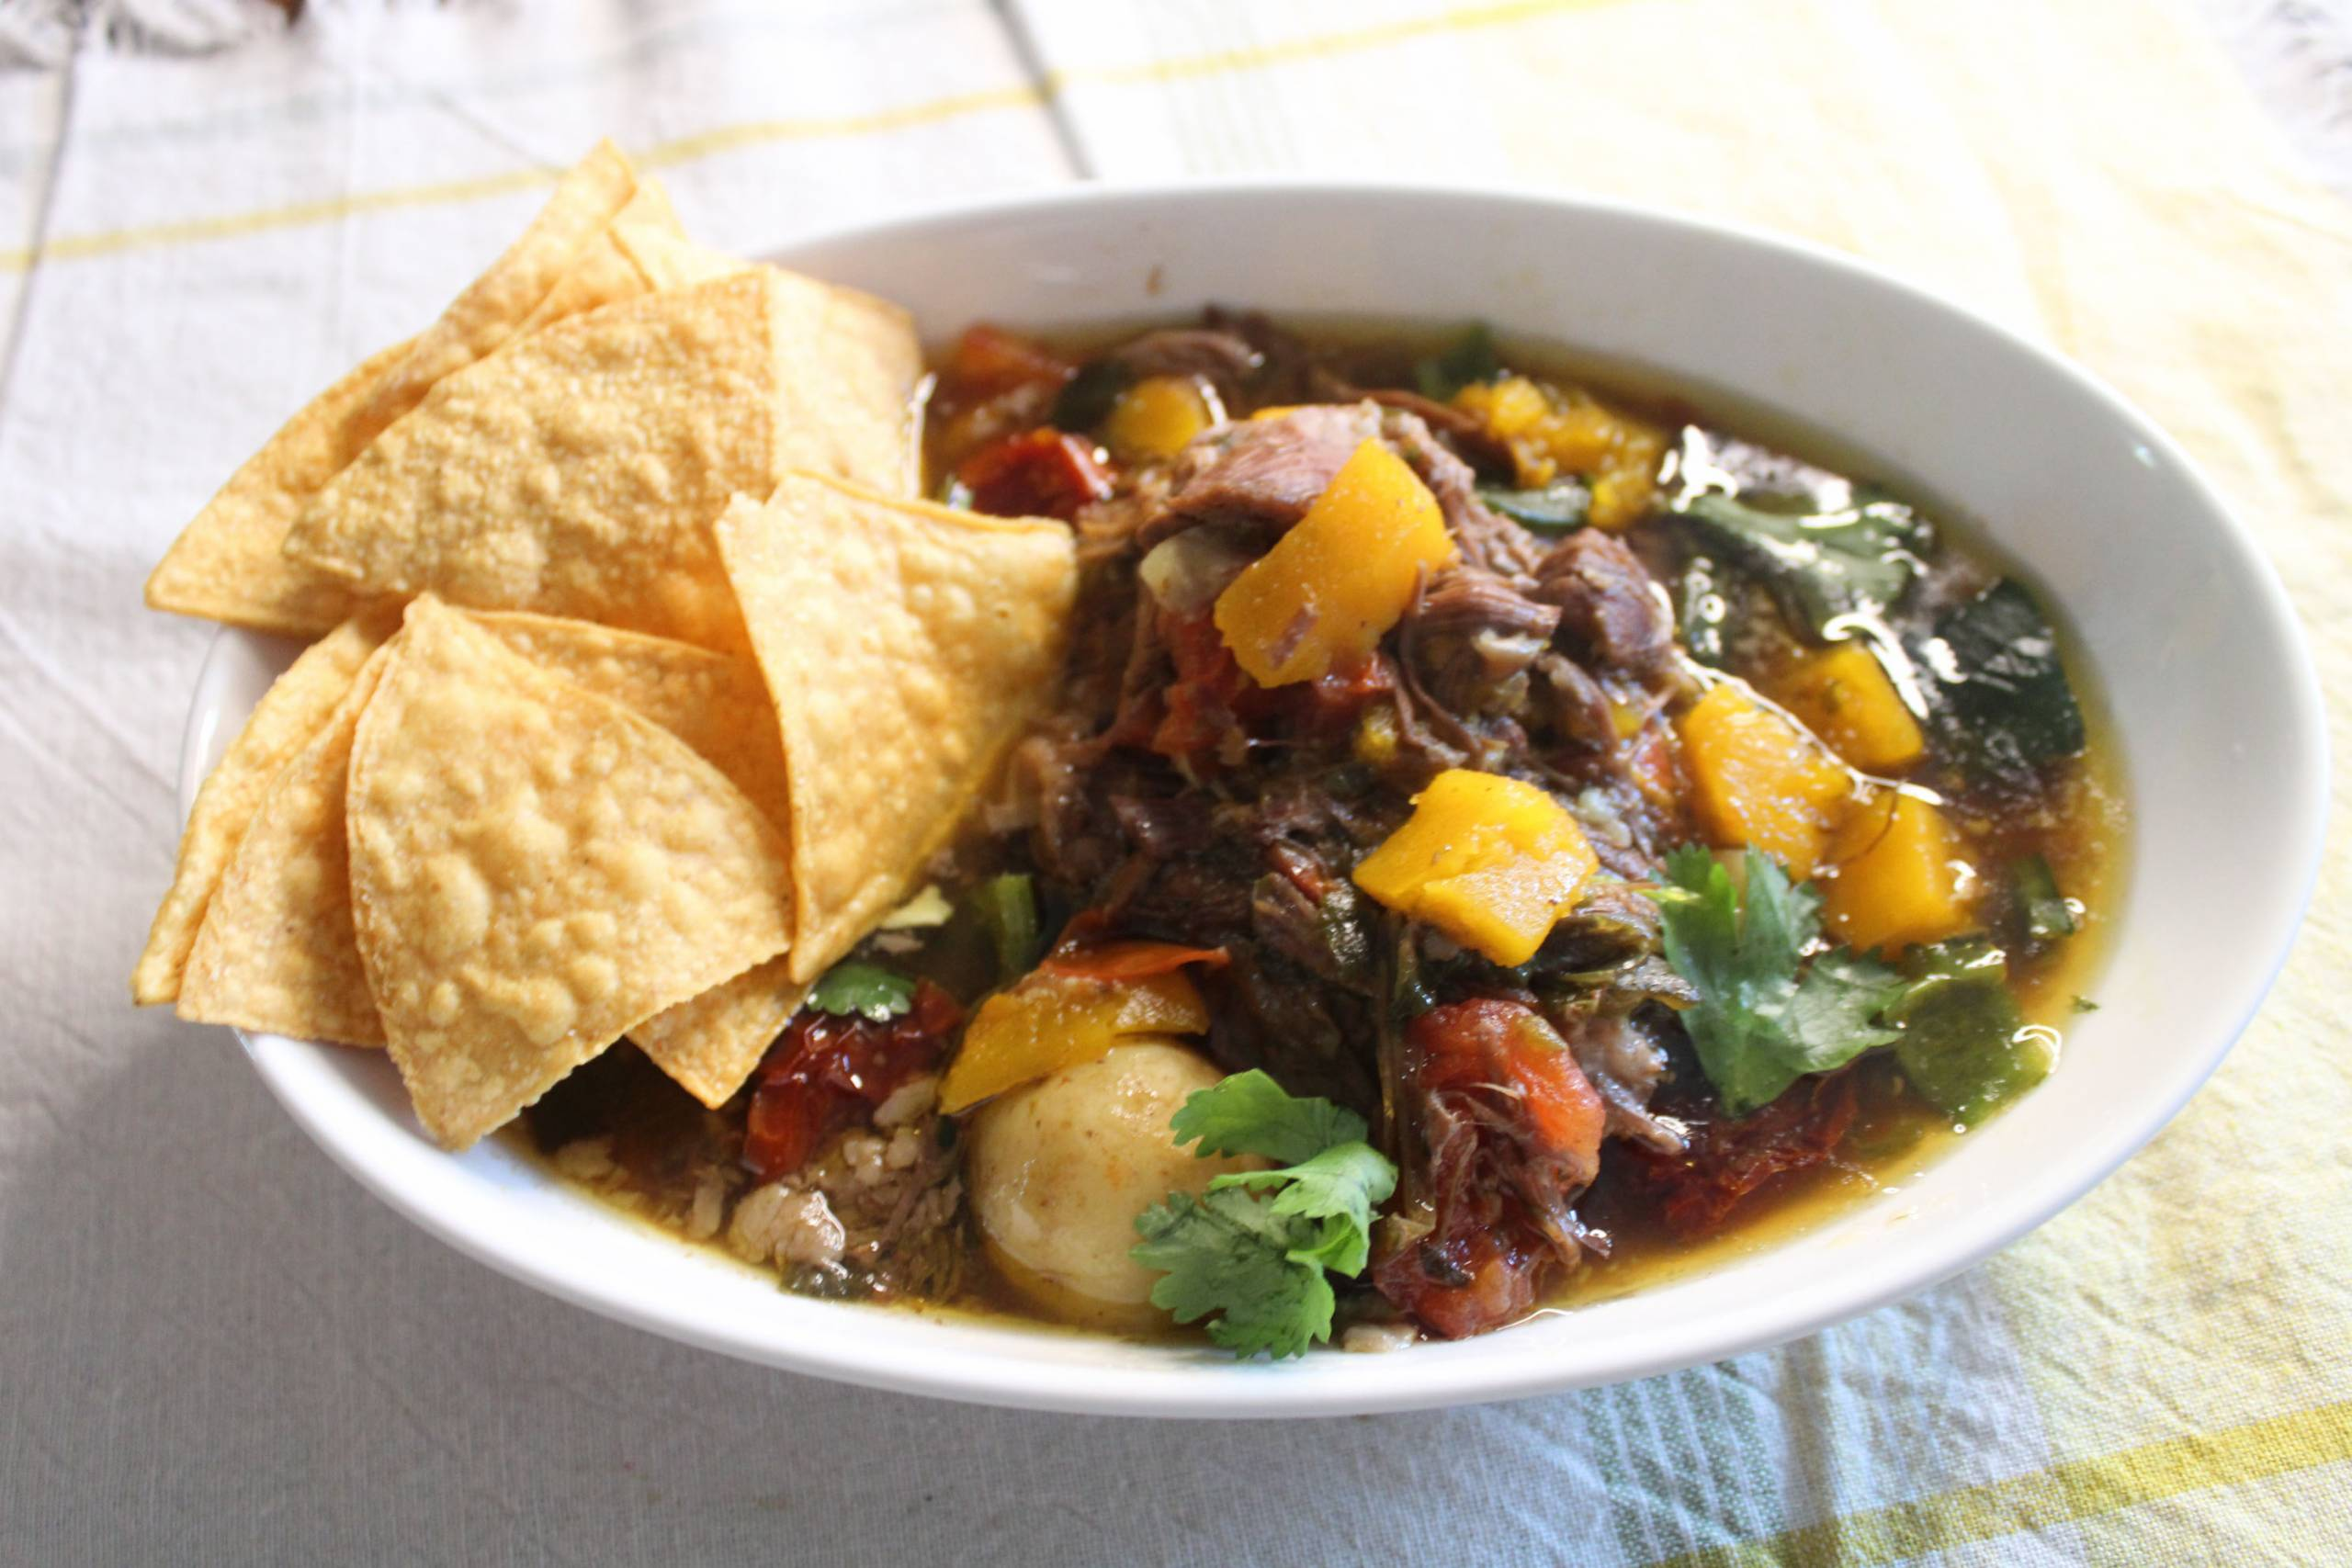 A bowl of meat stew topped with tortilla chips.